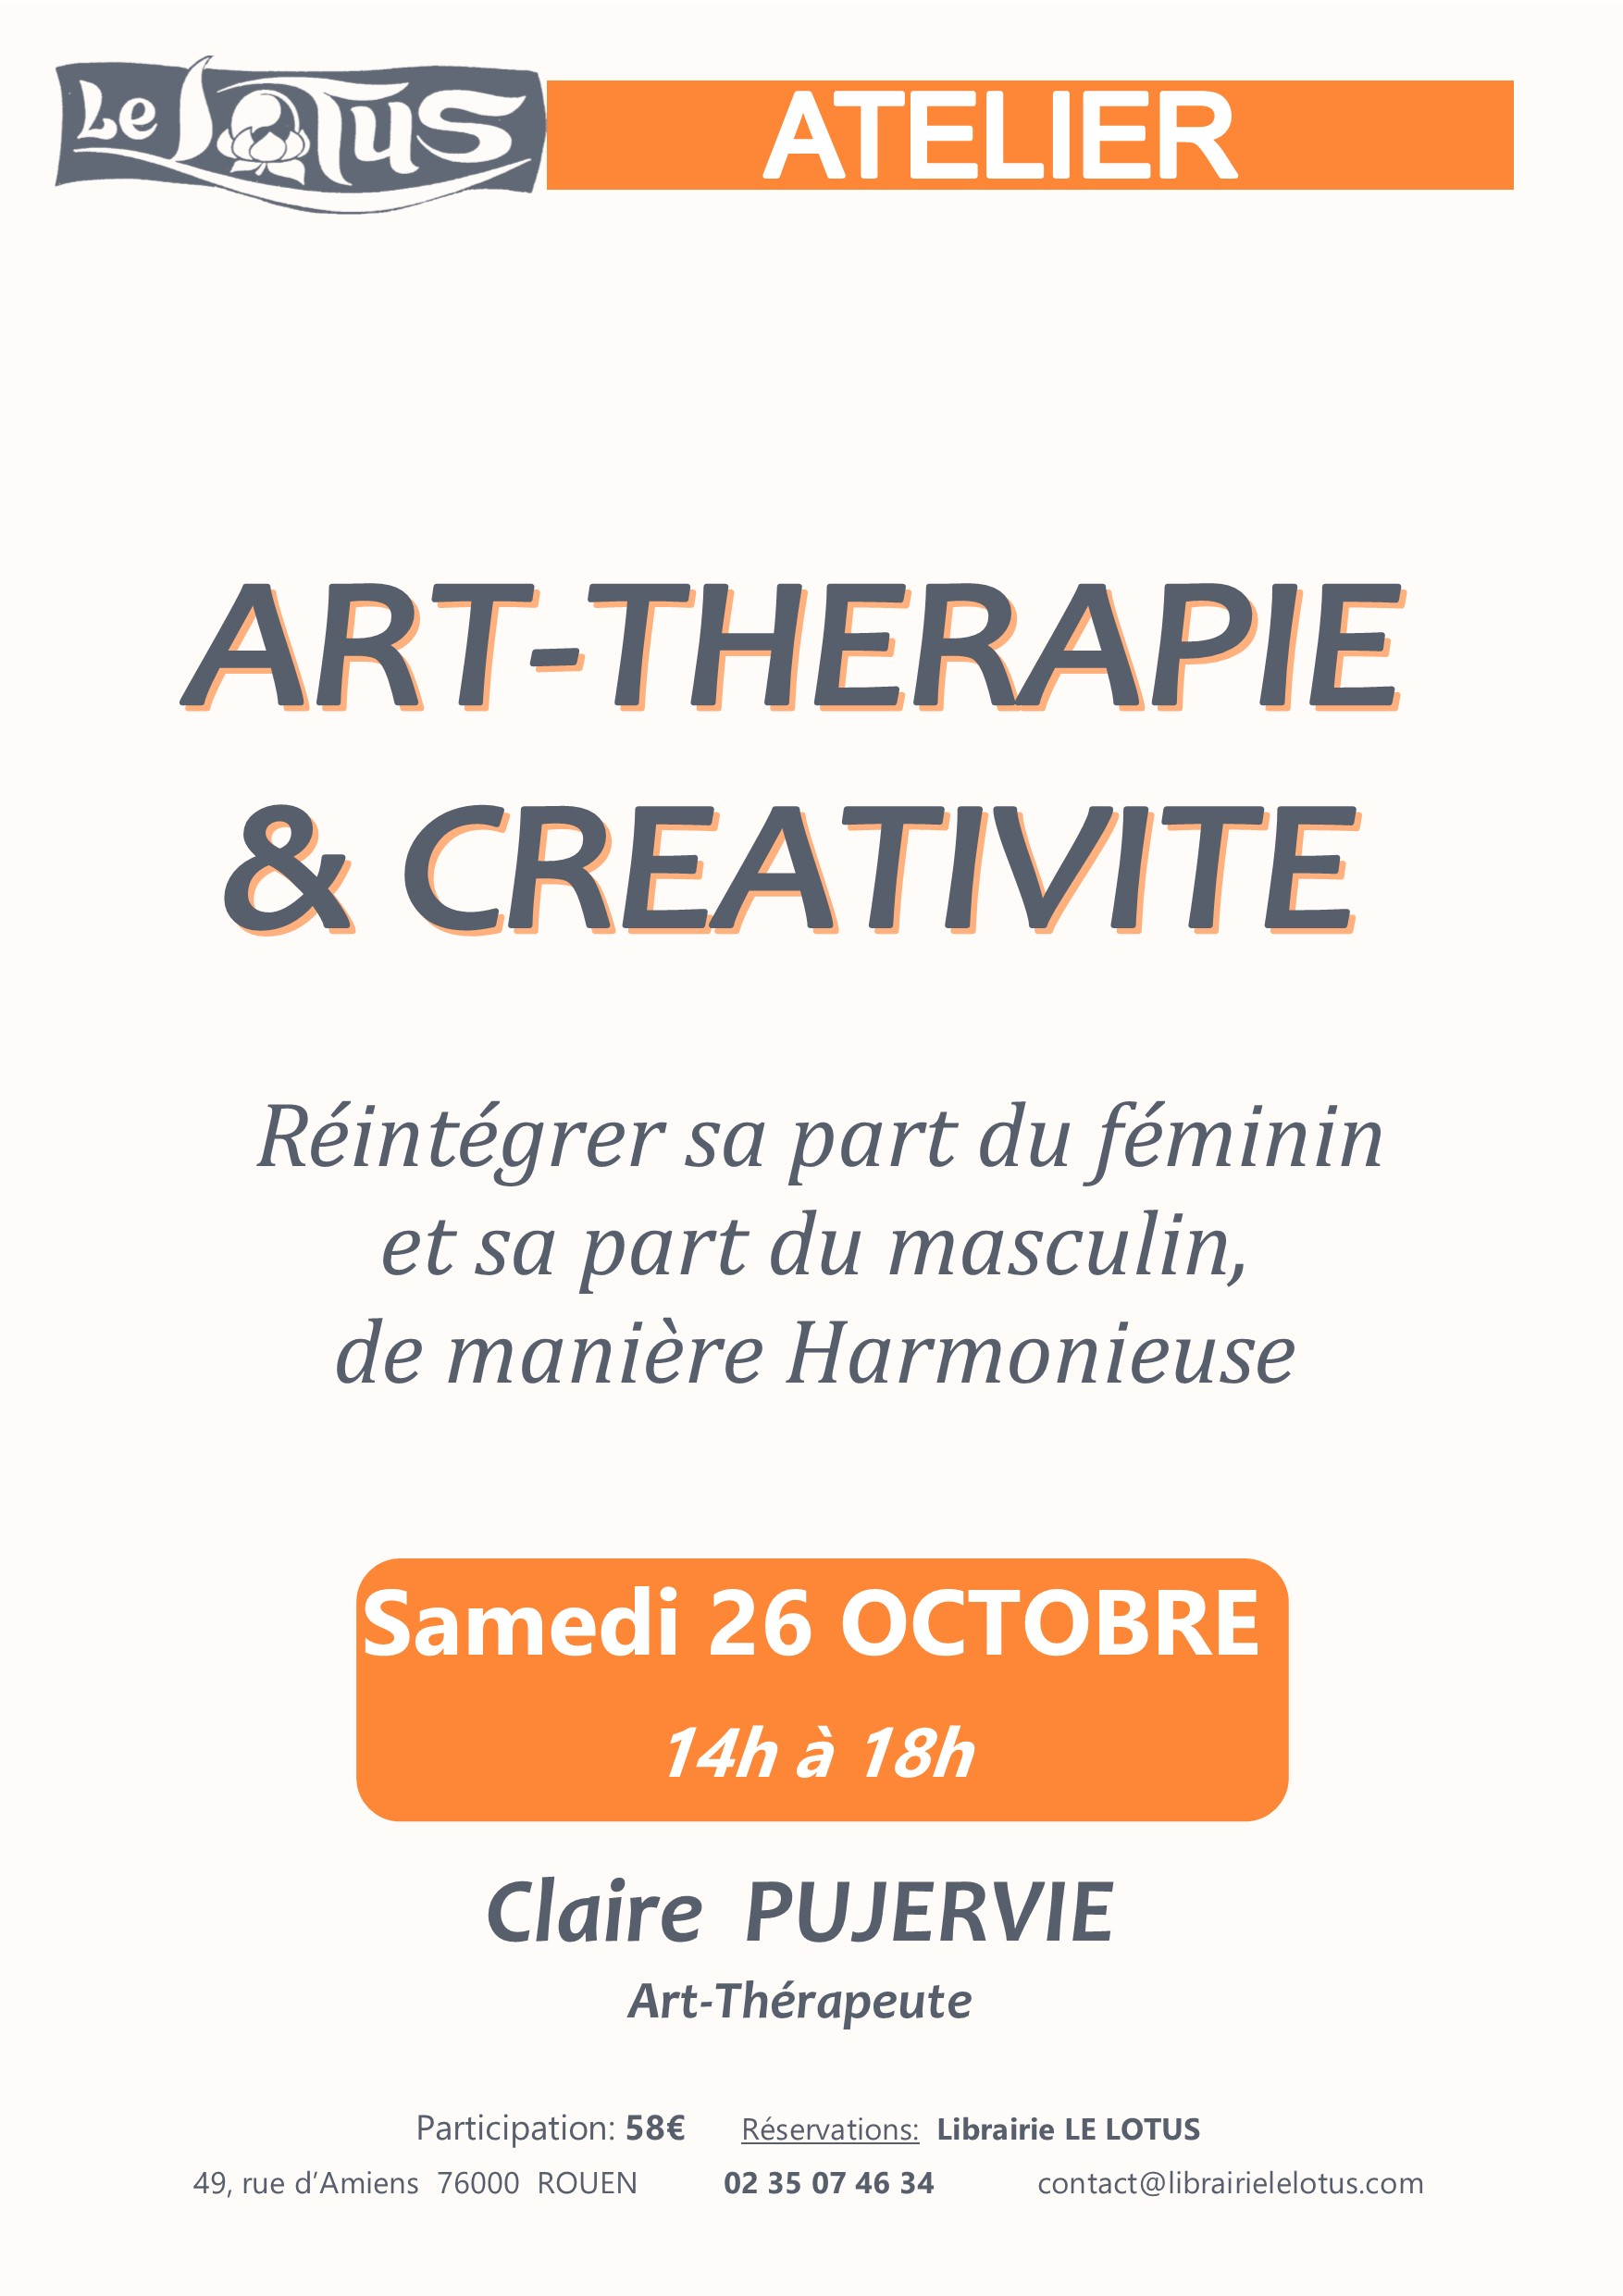 ATELIER - ART-THERAPIE & CREATIVITE